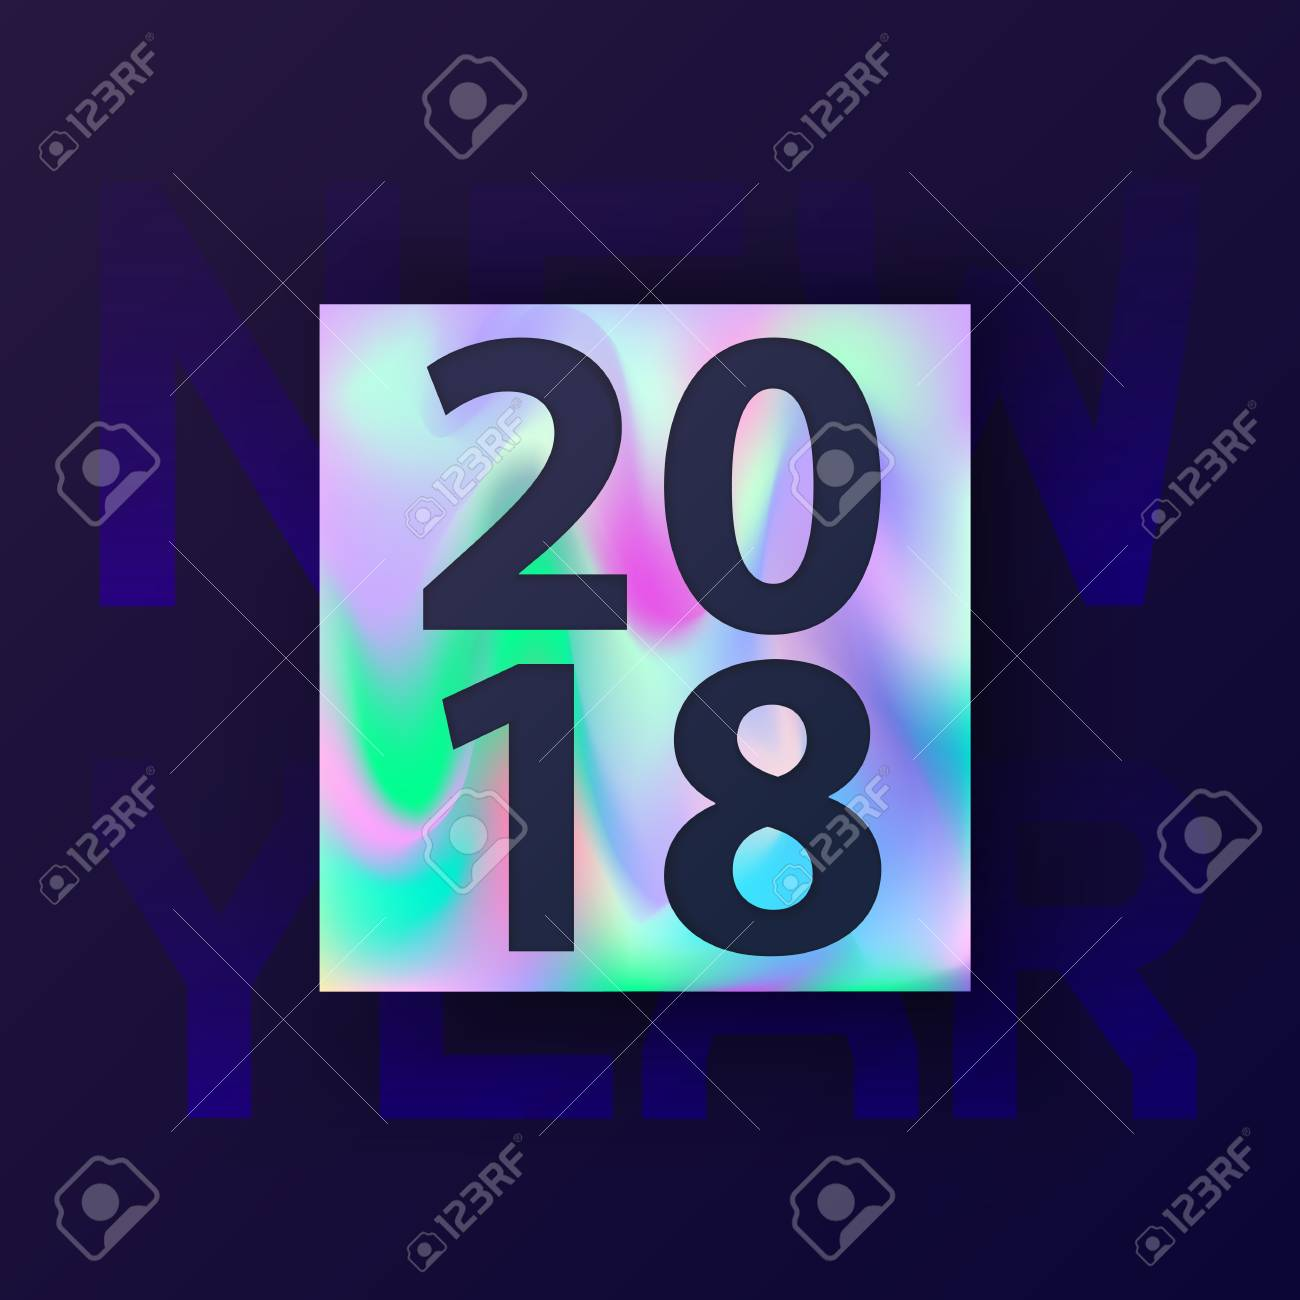 2018 new year card with holographic background modern concept cover design for hipster abstract